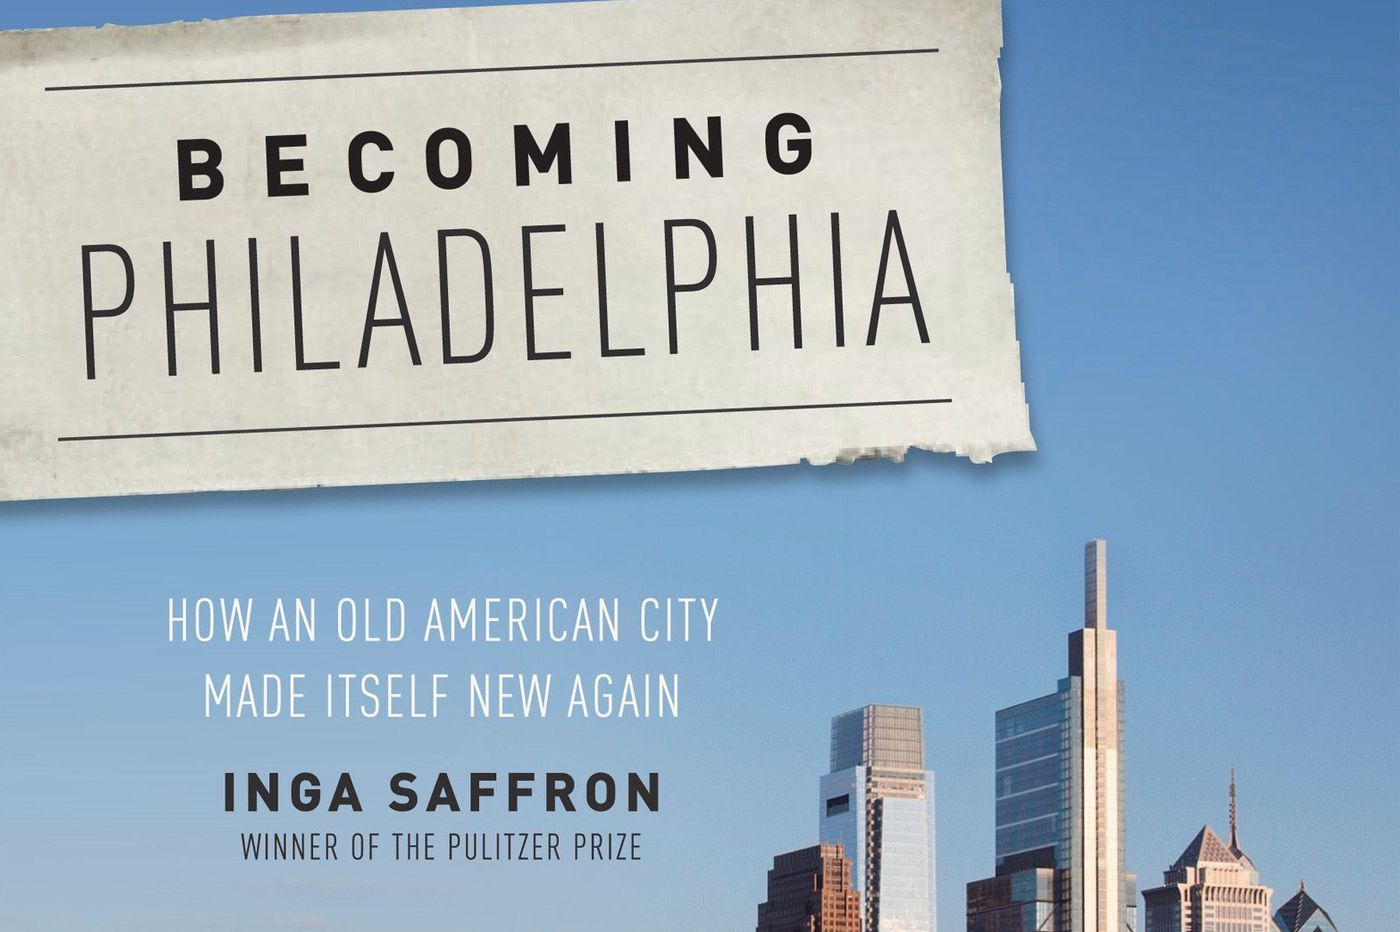 Inga Saffron's new book, 'Becoming Philadelphia,' collects her columns into a story of our city, renewing itself